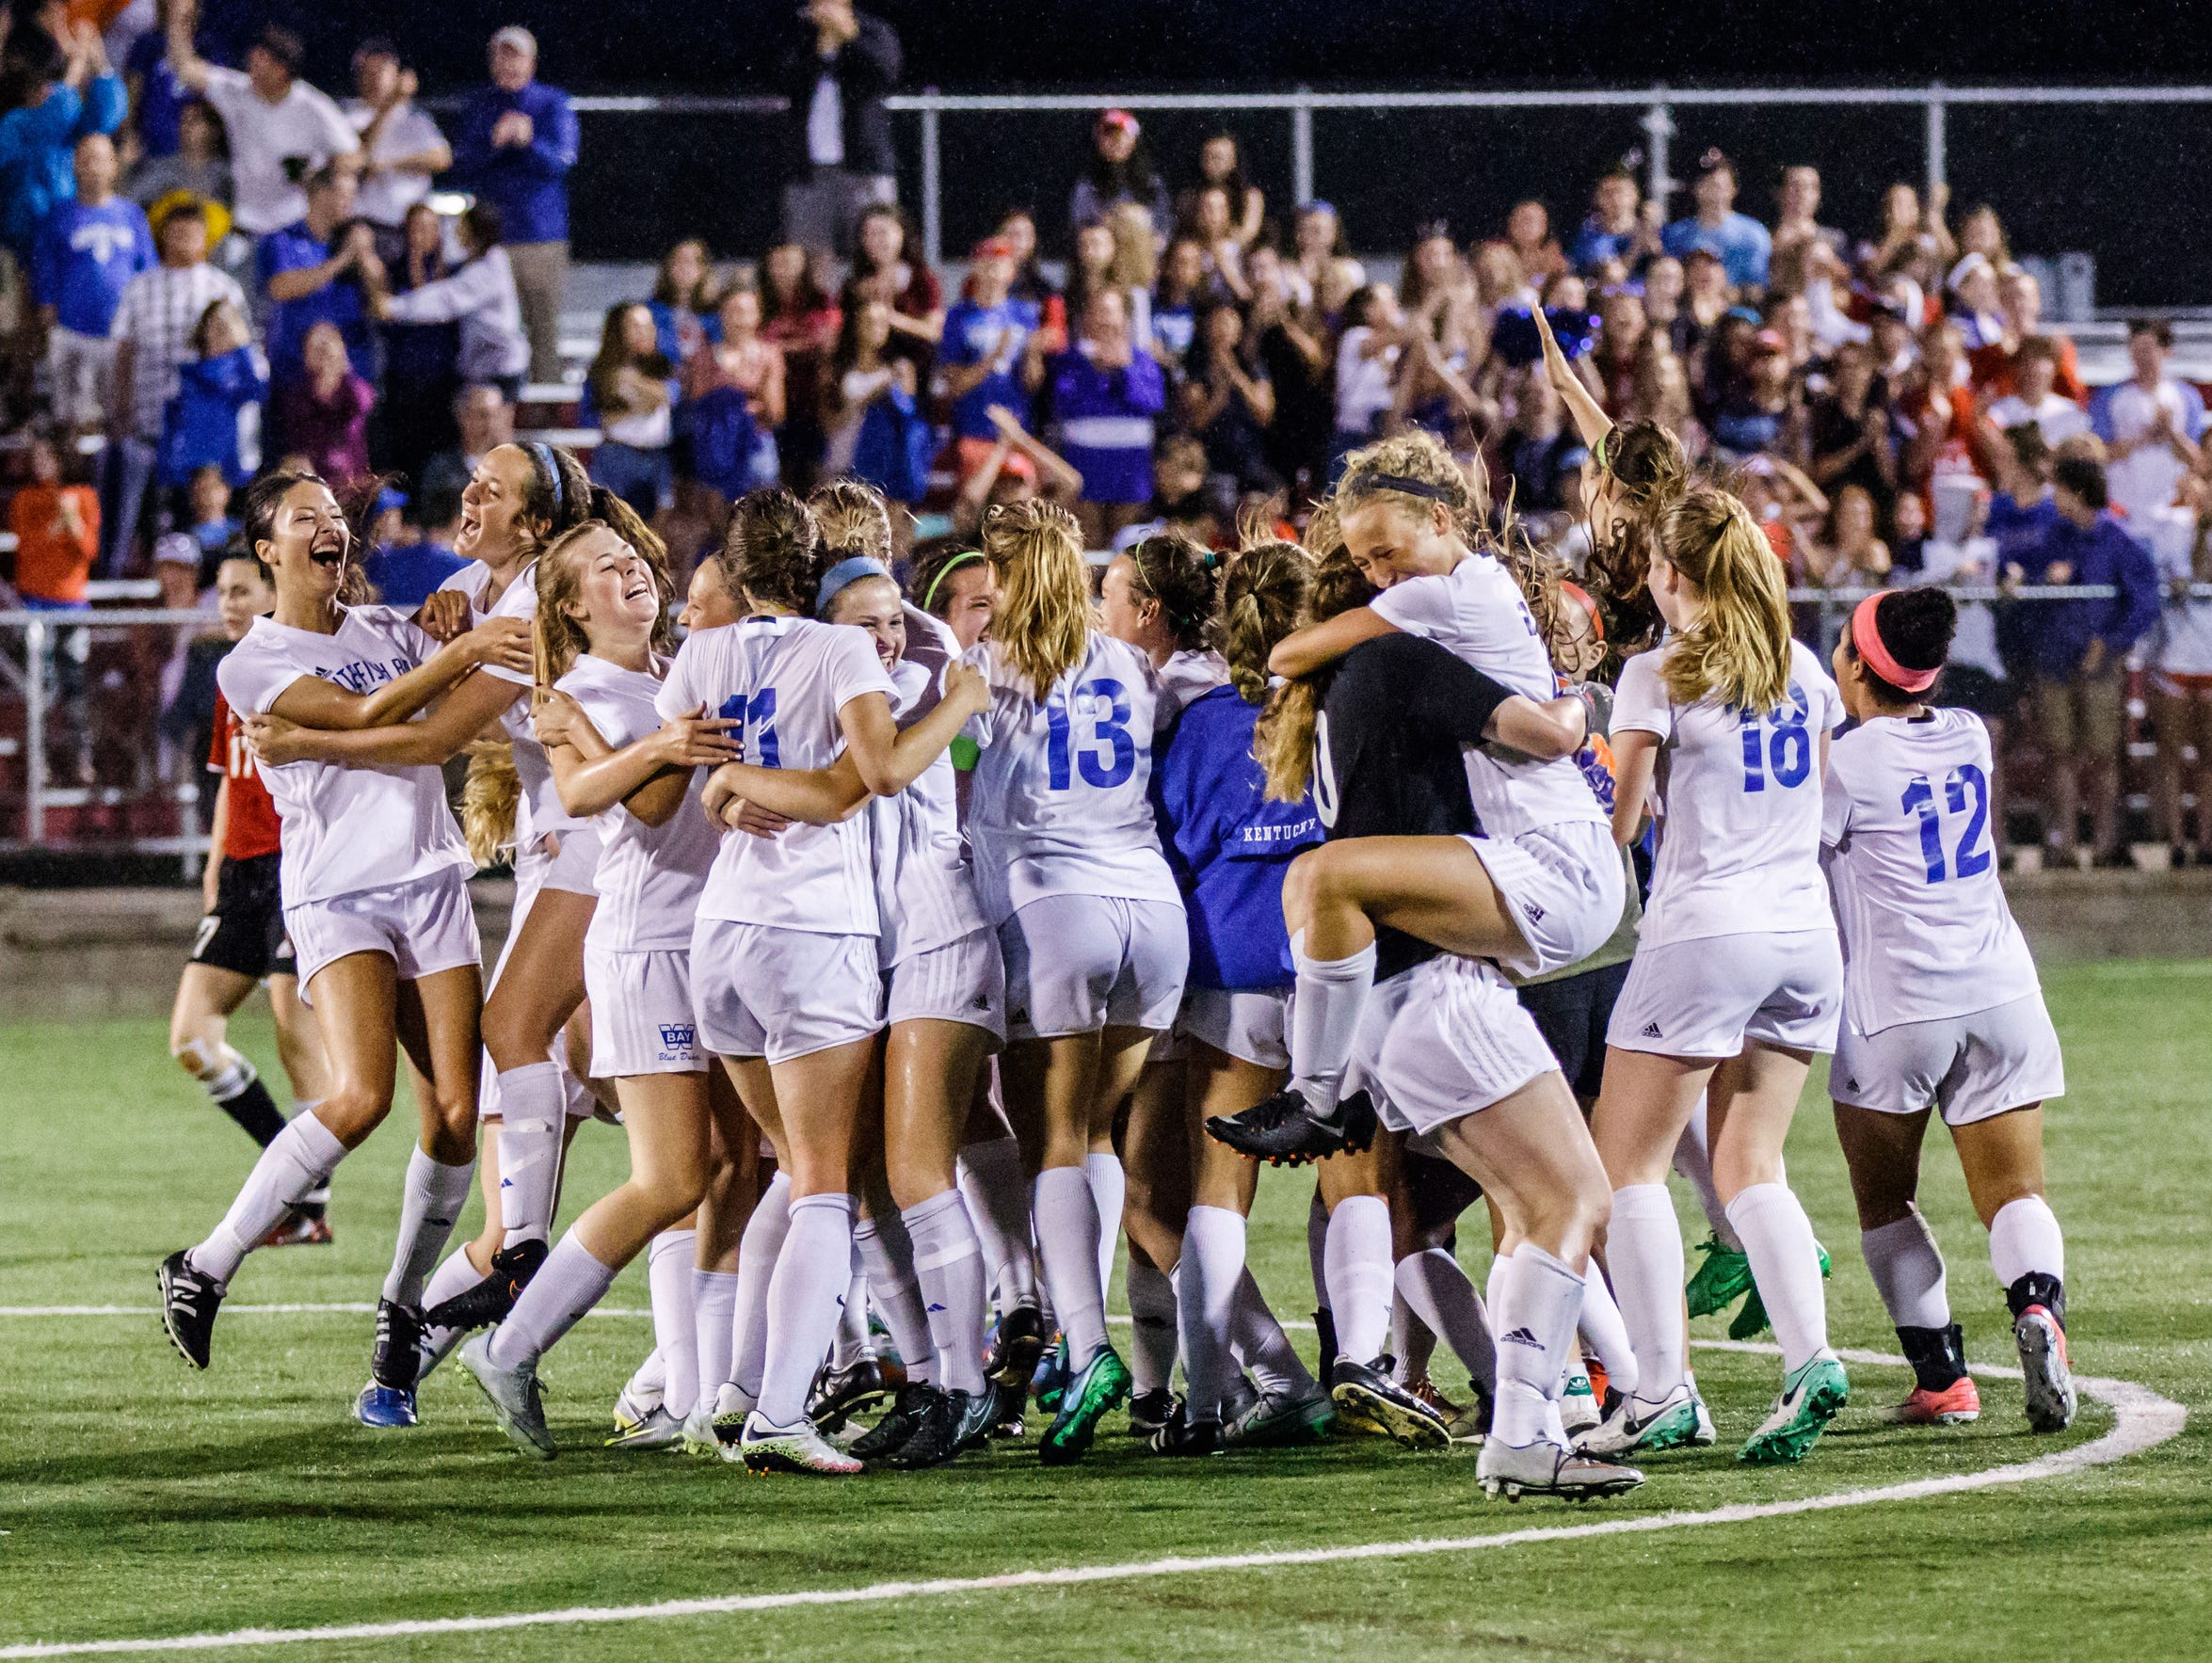 Whitefish Bay players celebrate after winning the WIAA